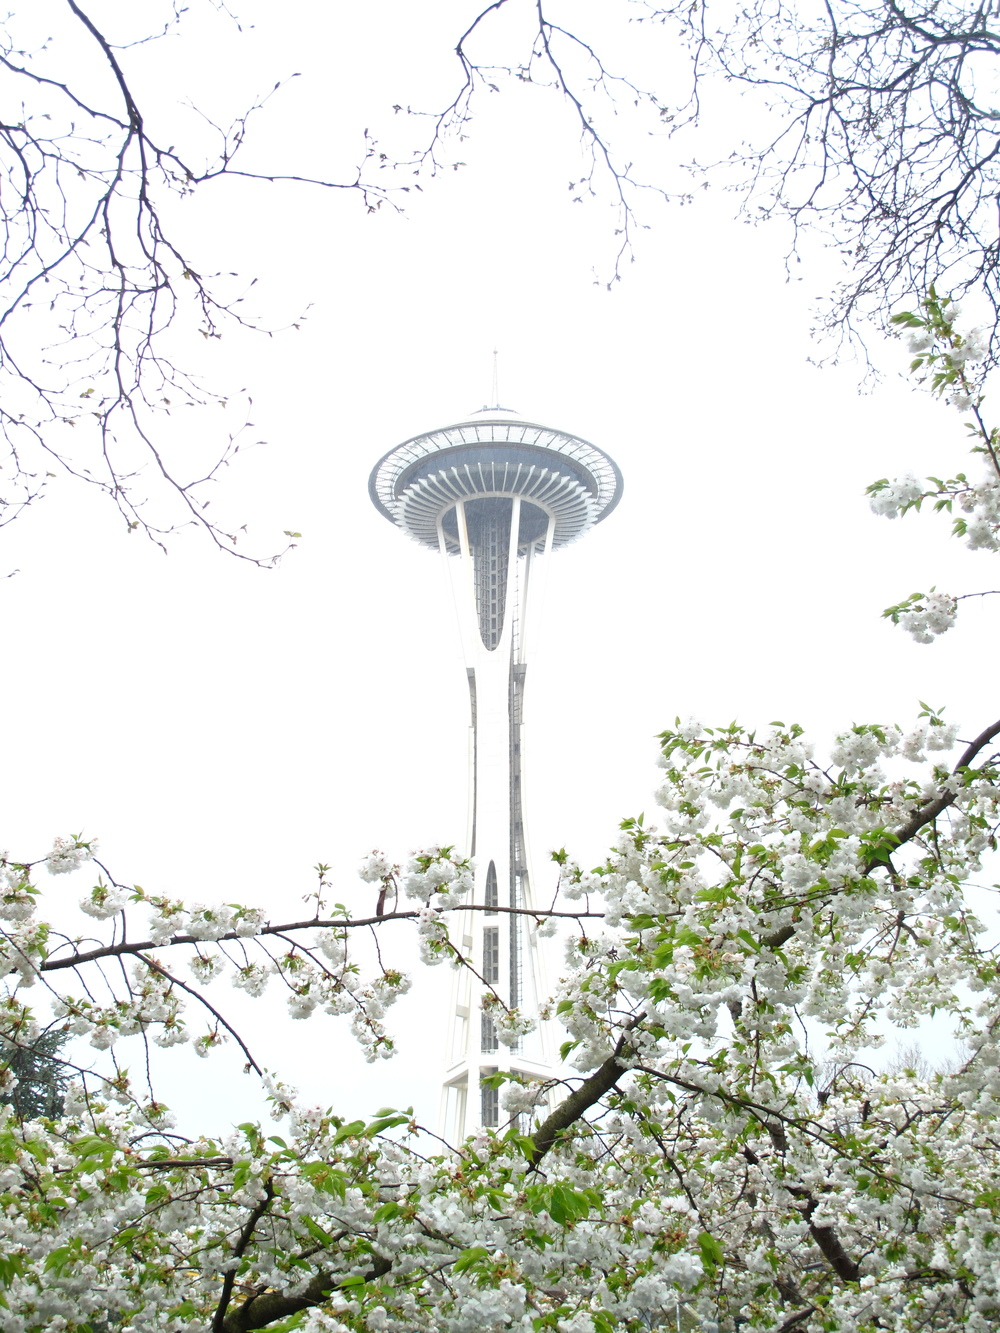 Space Needle seen from below in the Spring with cherry blossoms.